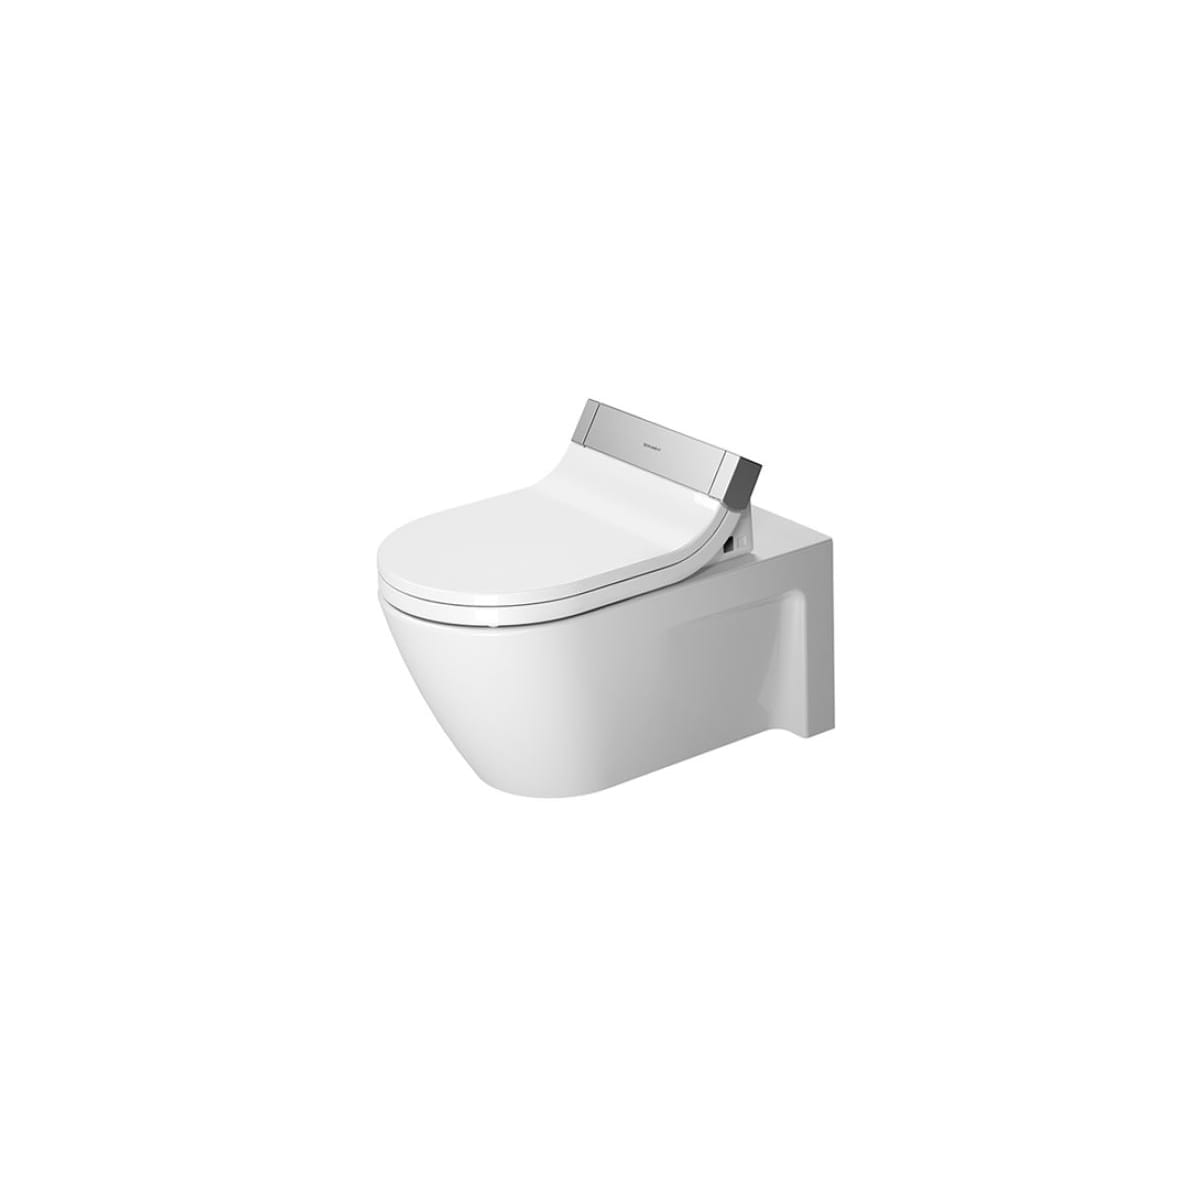 Duravit Stark 2 Wall Mounted One-Piece Elongated Toilet - Less Seat and Concealed Tank